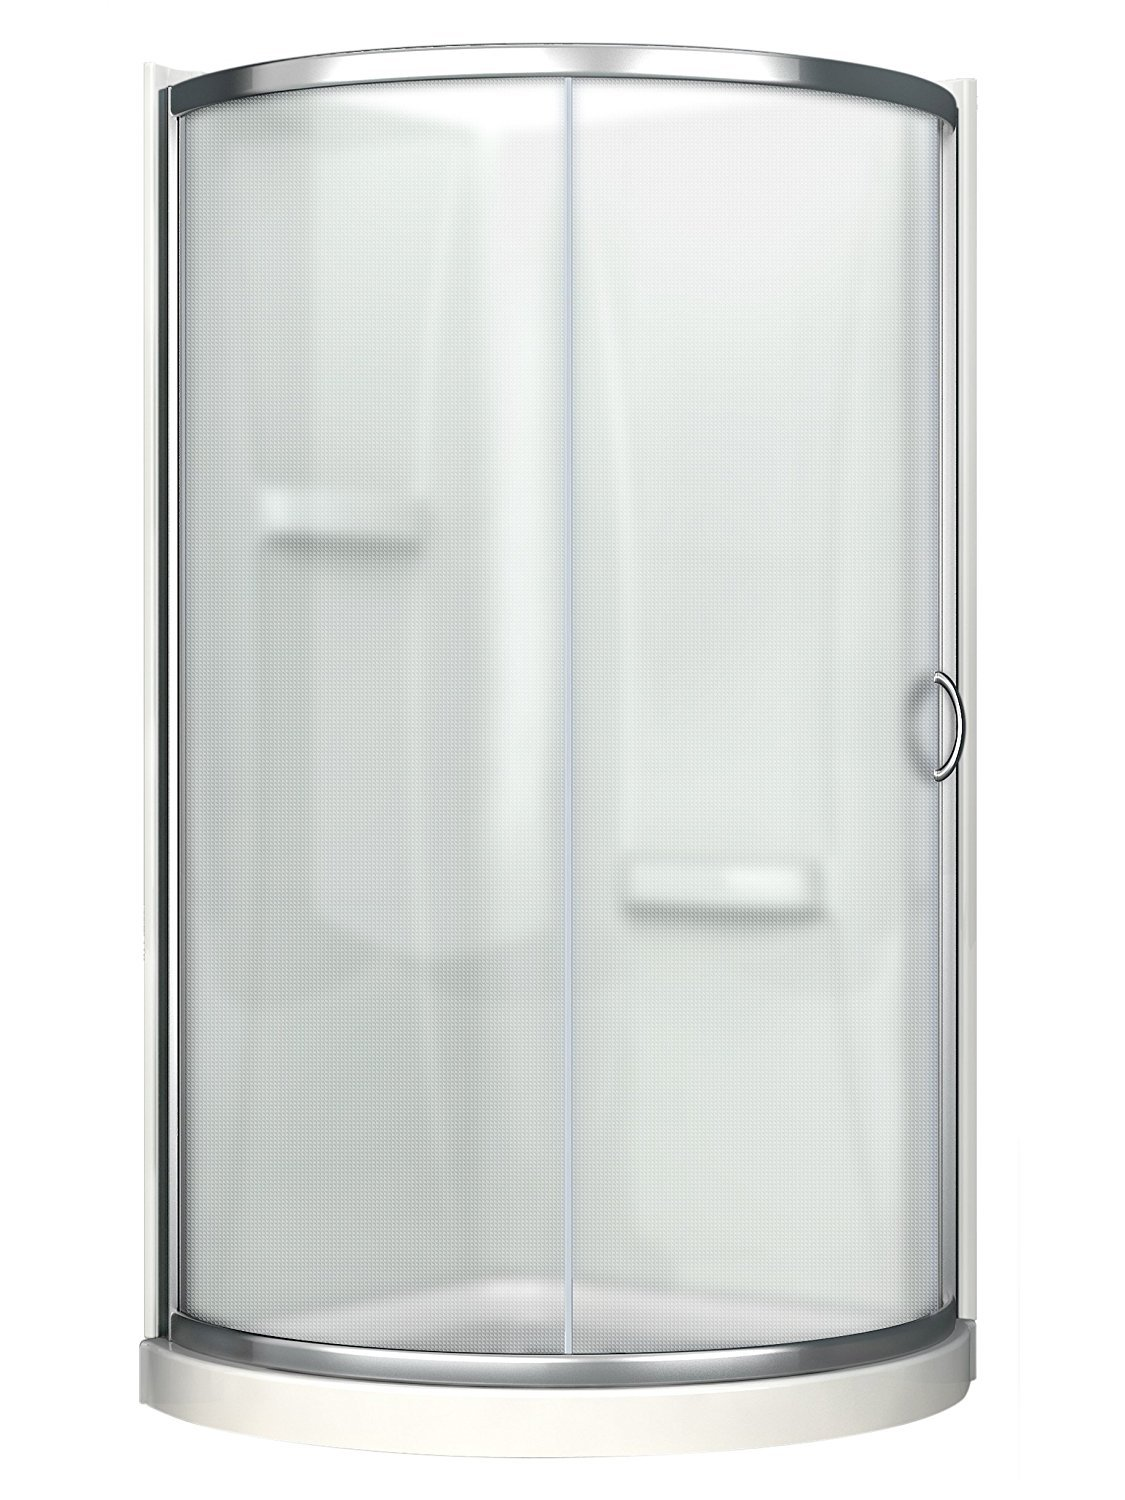 Ove decors breeze 31 withwalls premium 31 inch shower kit with acrylic base and walls